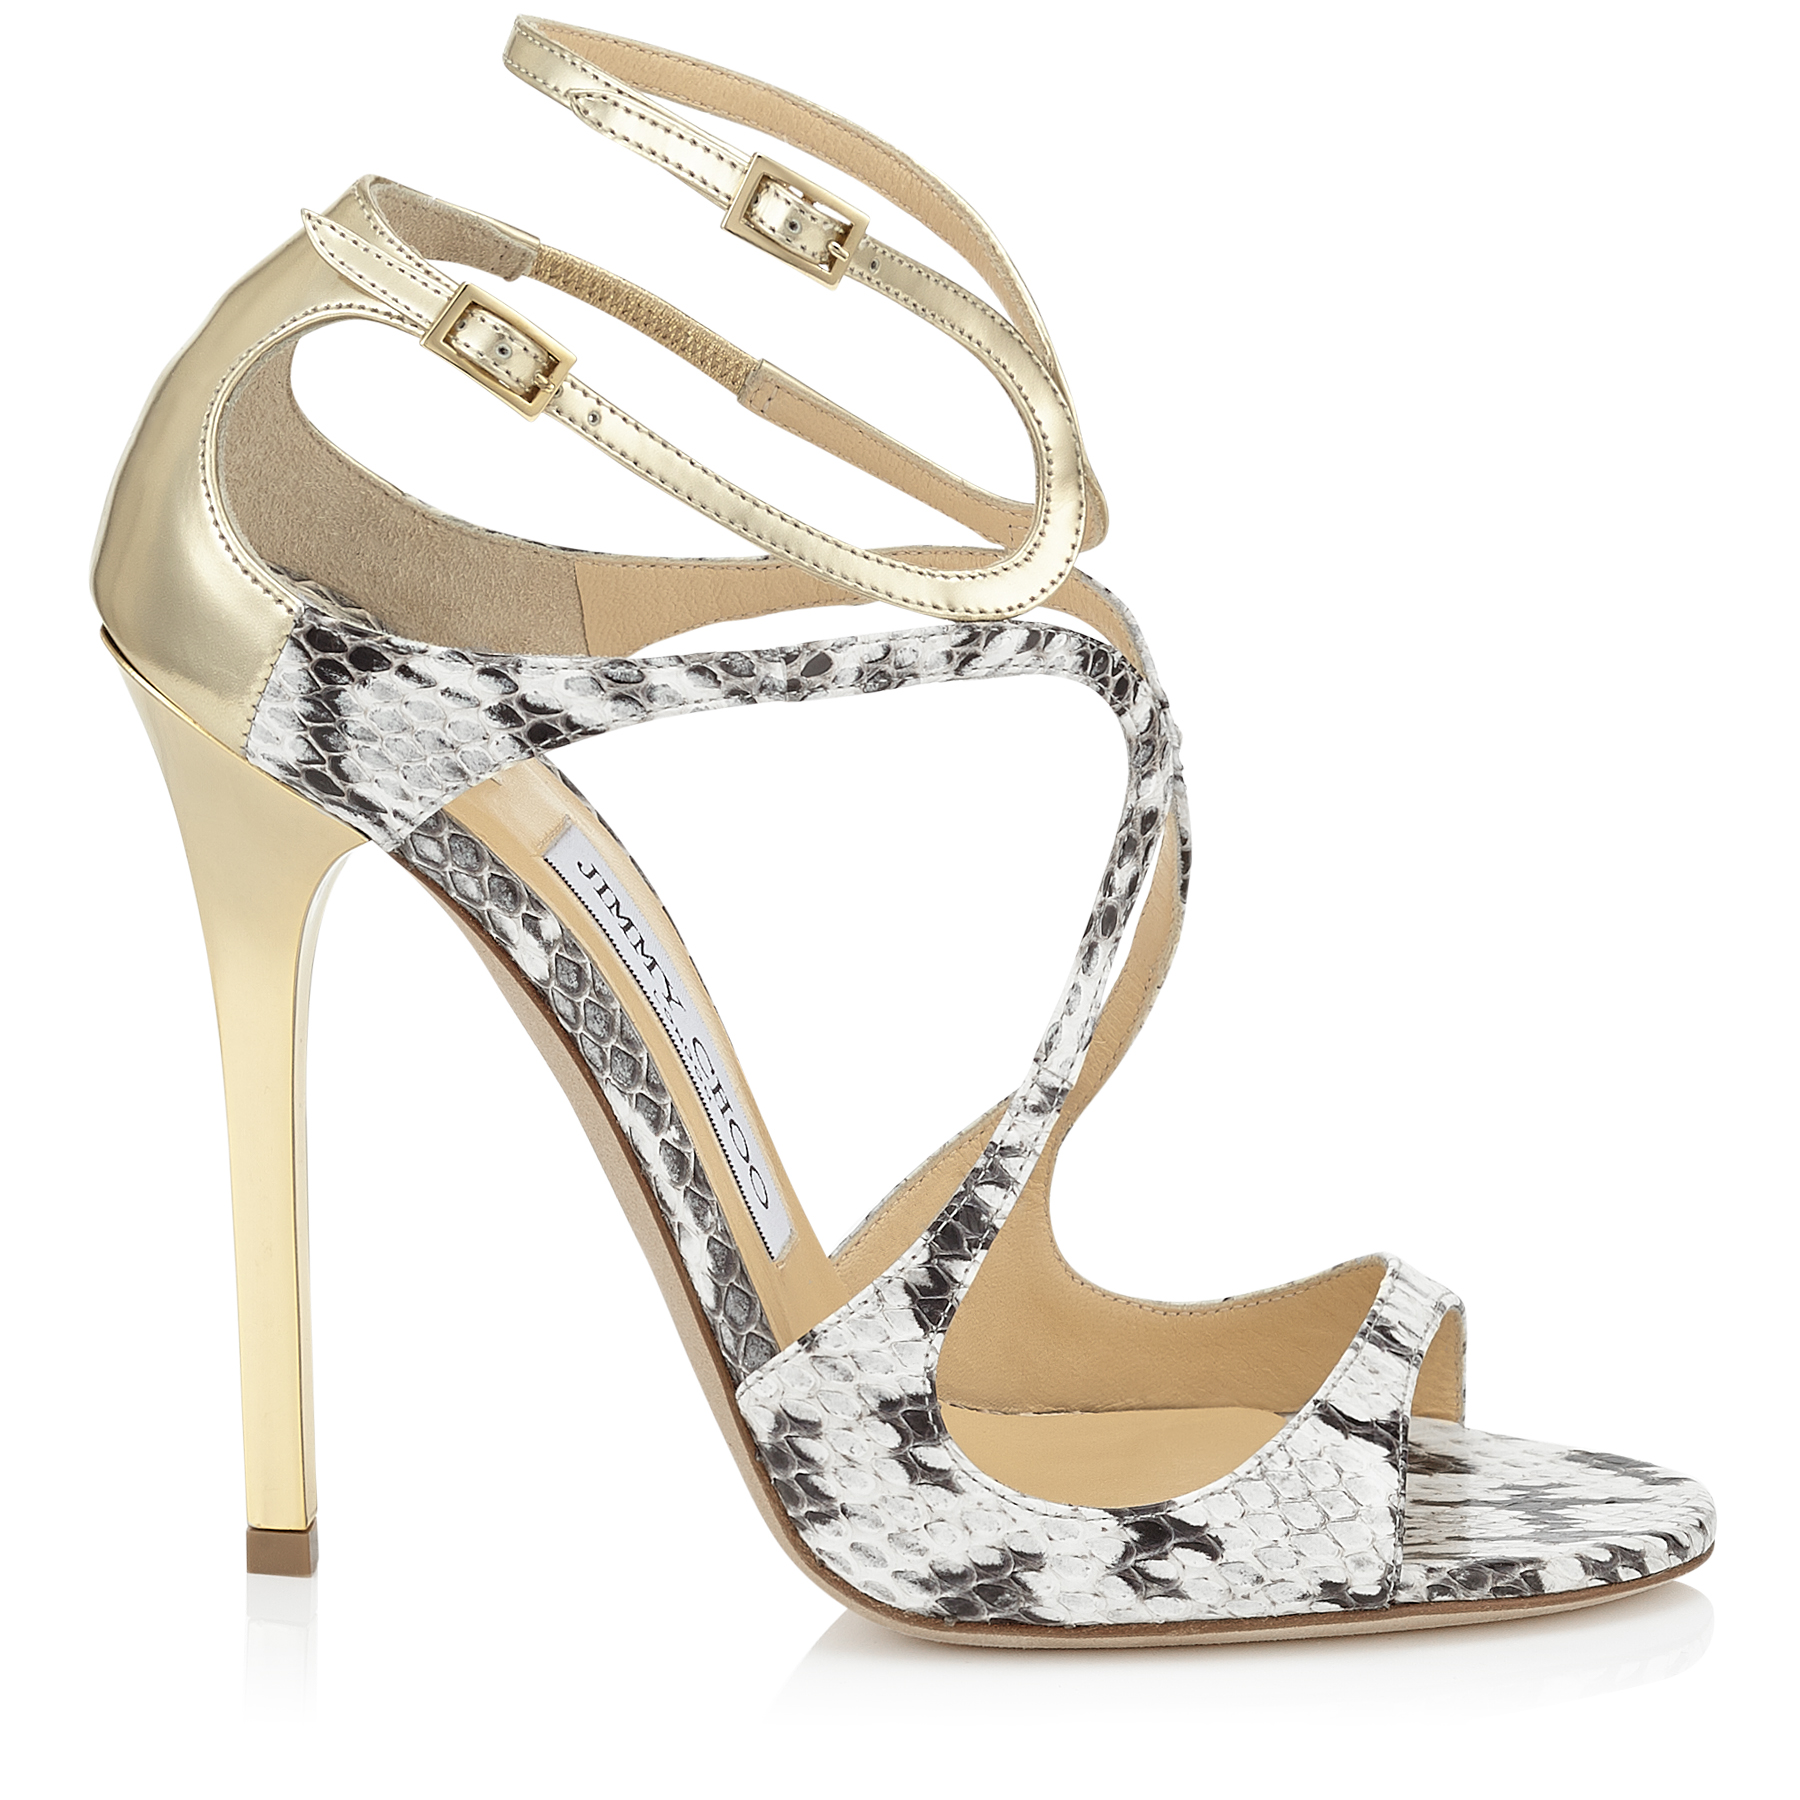 LANCE Natural Glossy Elaphe and Light Platinum Mirror Leather Strappy Sandals